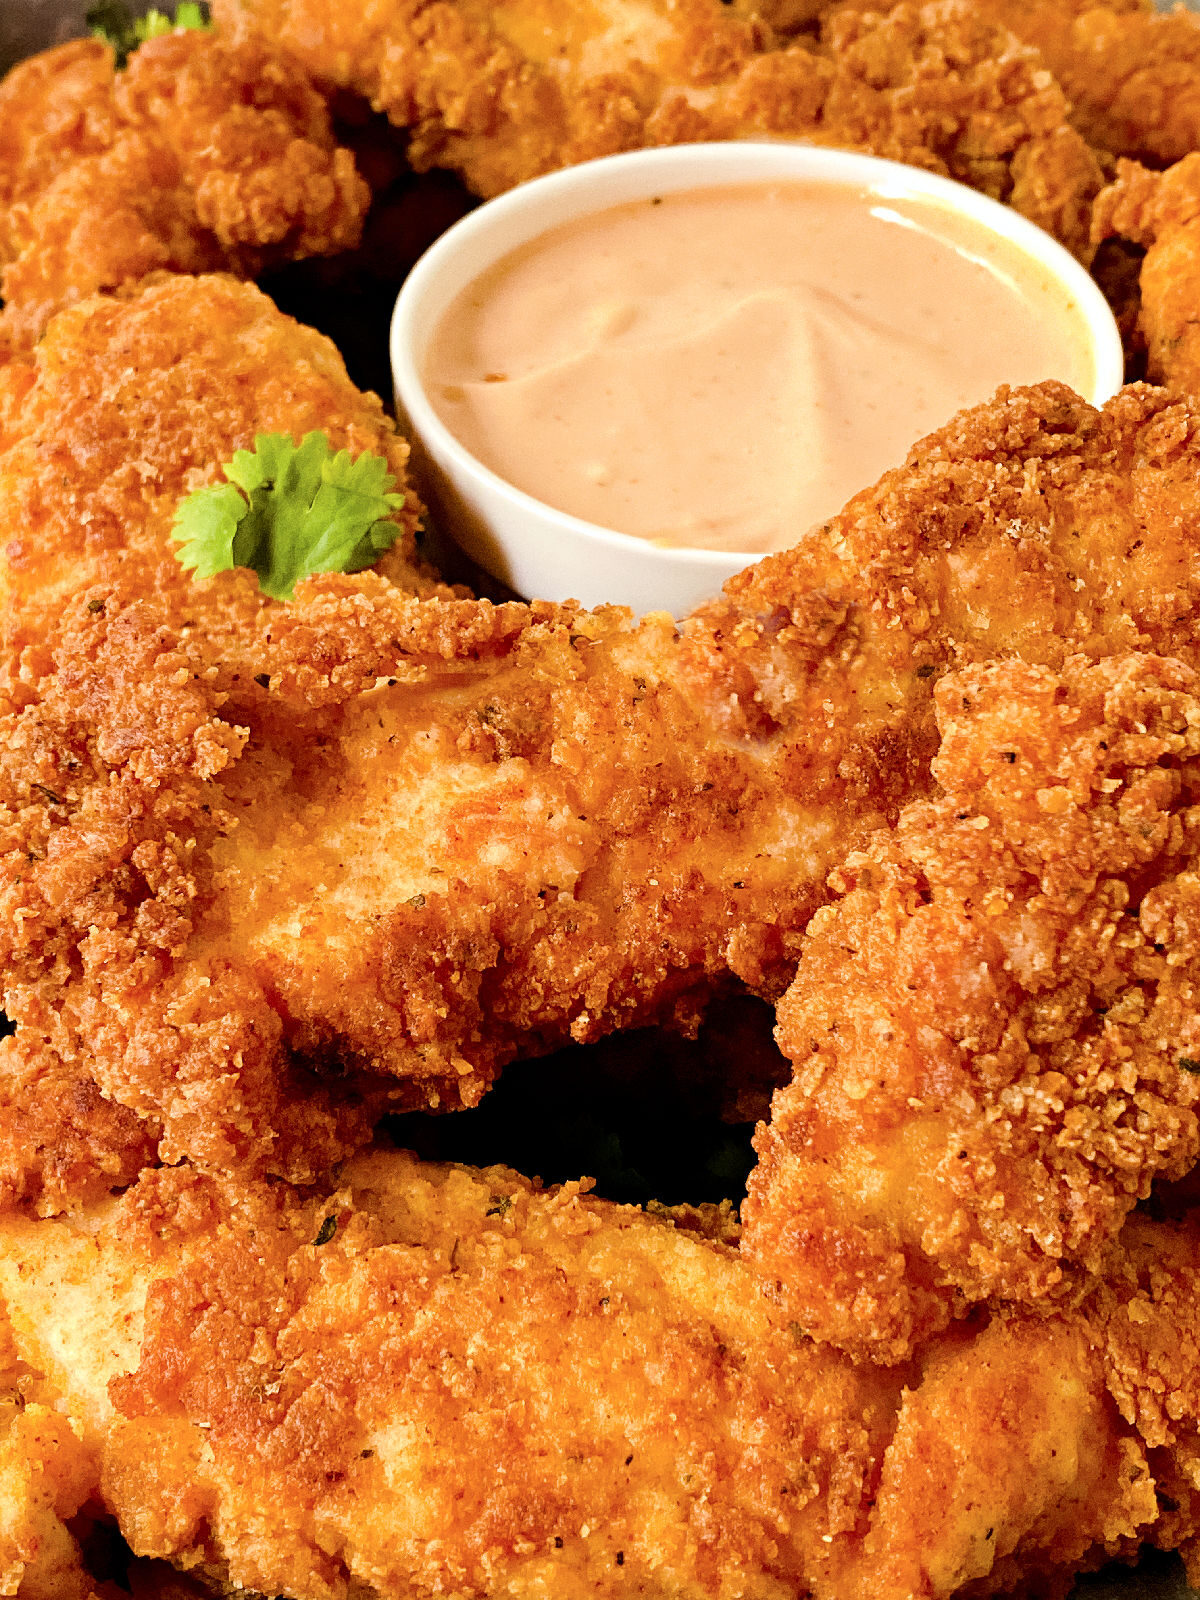 Platter of chicken tenders and dipping sauce.